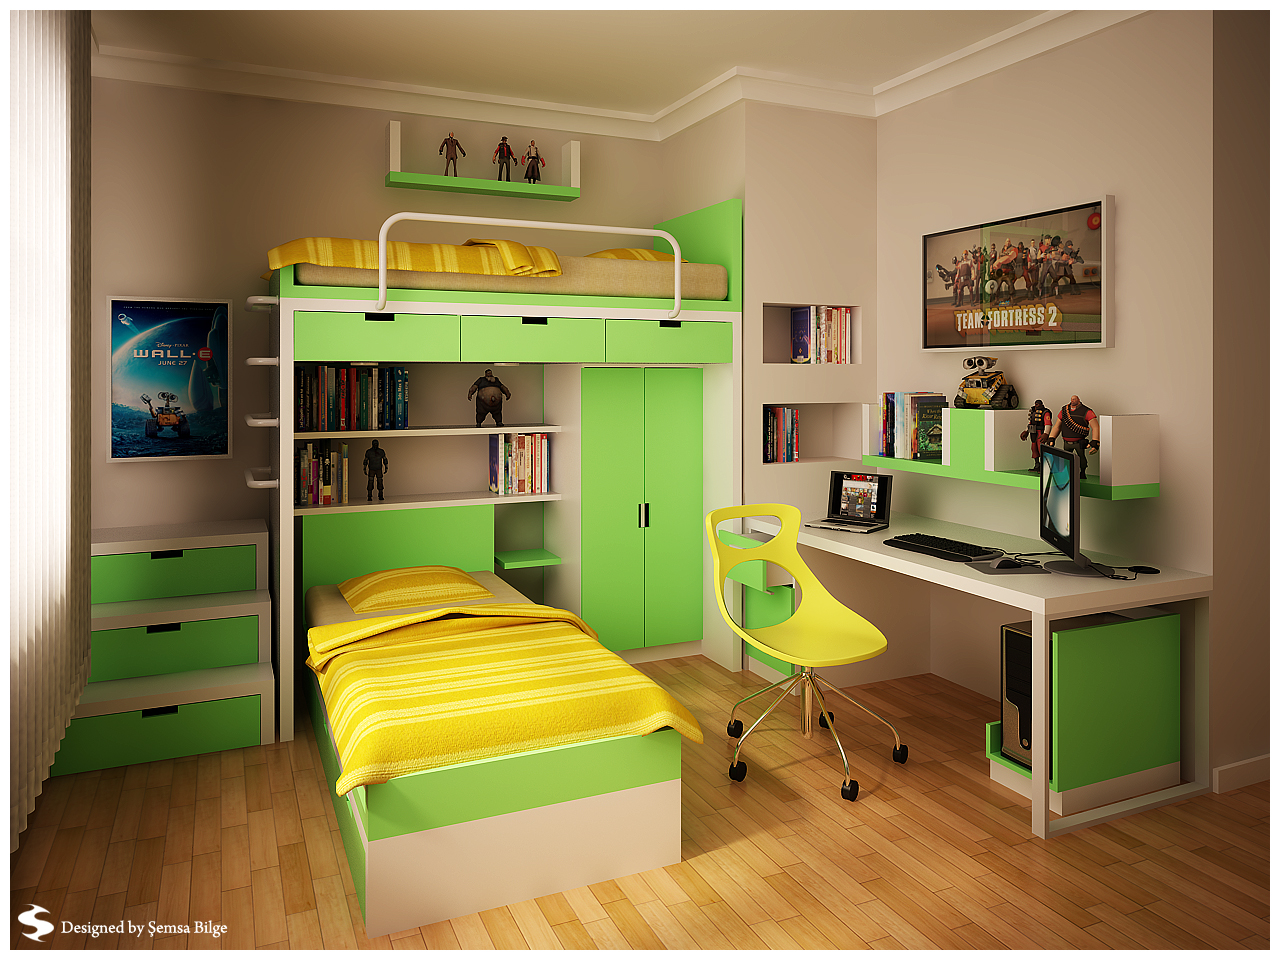 Teenage Room Designs. Cool Affordable Backyard Ideas. Backyard Landscaping Ideas With Swimming Pools. Bulletin Board Ideas Customer Service. Quirky Outfit Ideas Pinterest. Tattoo Ideas Joker. Bathroom Decor Pictures And Ideas. Vanity Furniture Ideas. Pumpkin Carving Ideas Baby's First Halloween